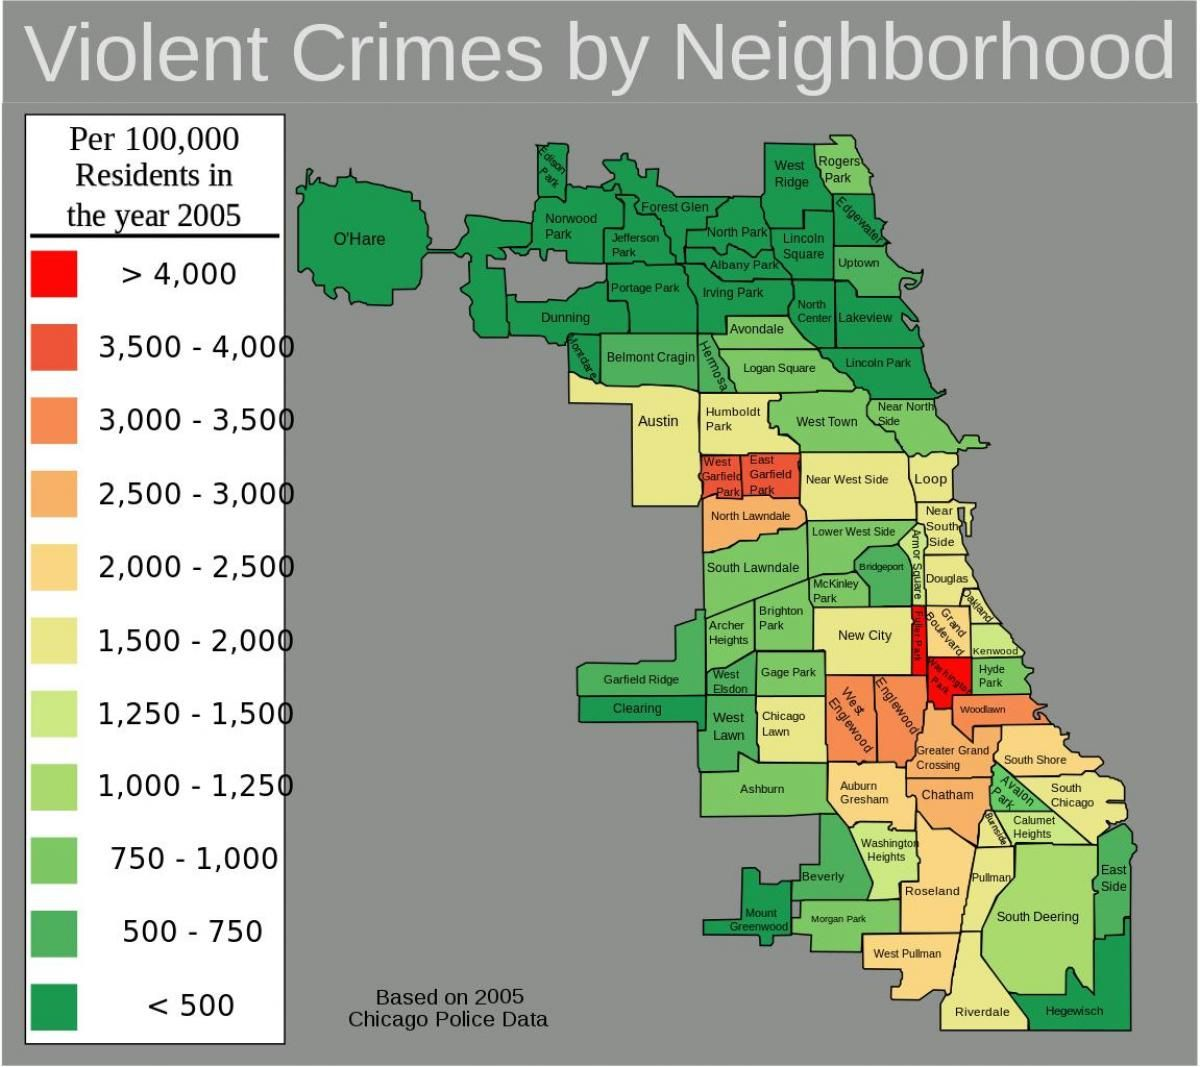 Areas To Avoid In Chicago Map 2020 bad areas of Chicago map | Chicago map, Chicago neighborhoods map